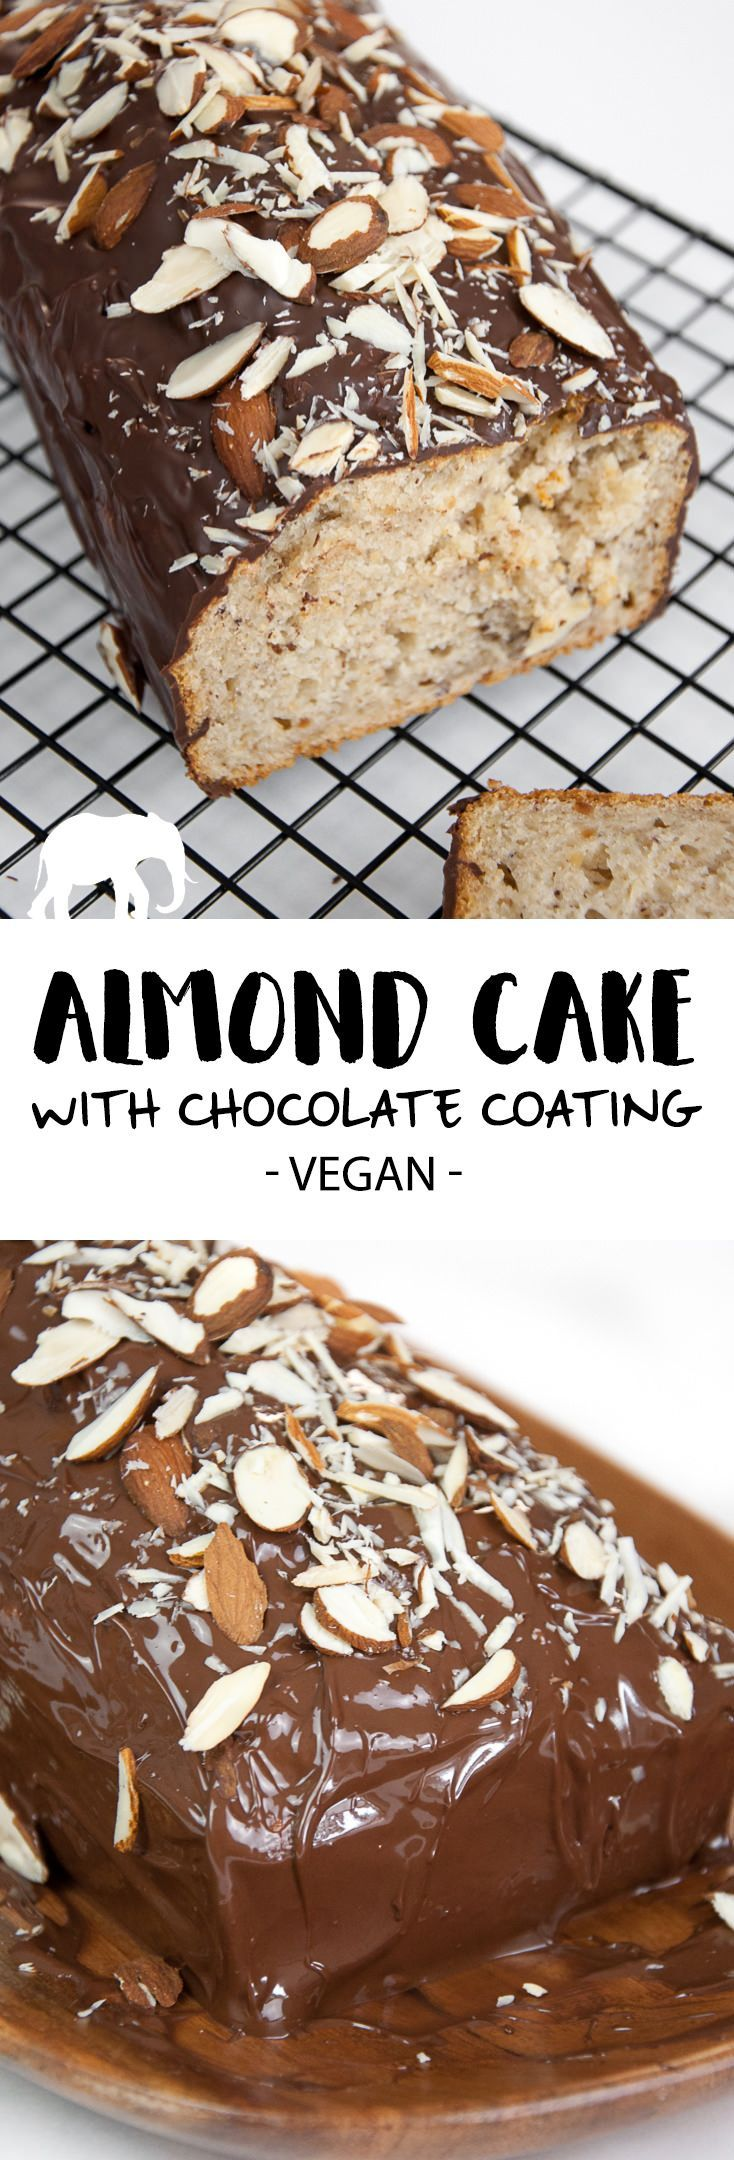 Almond Cake with Chocolate Coating via @elephantasticv